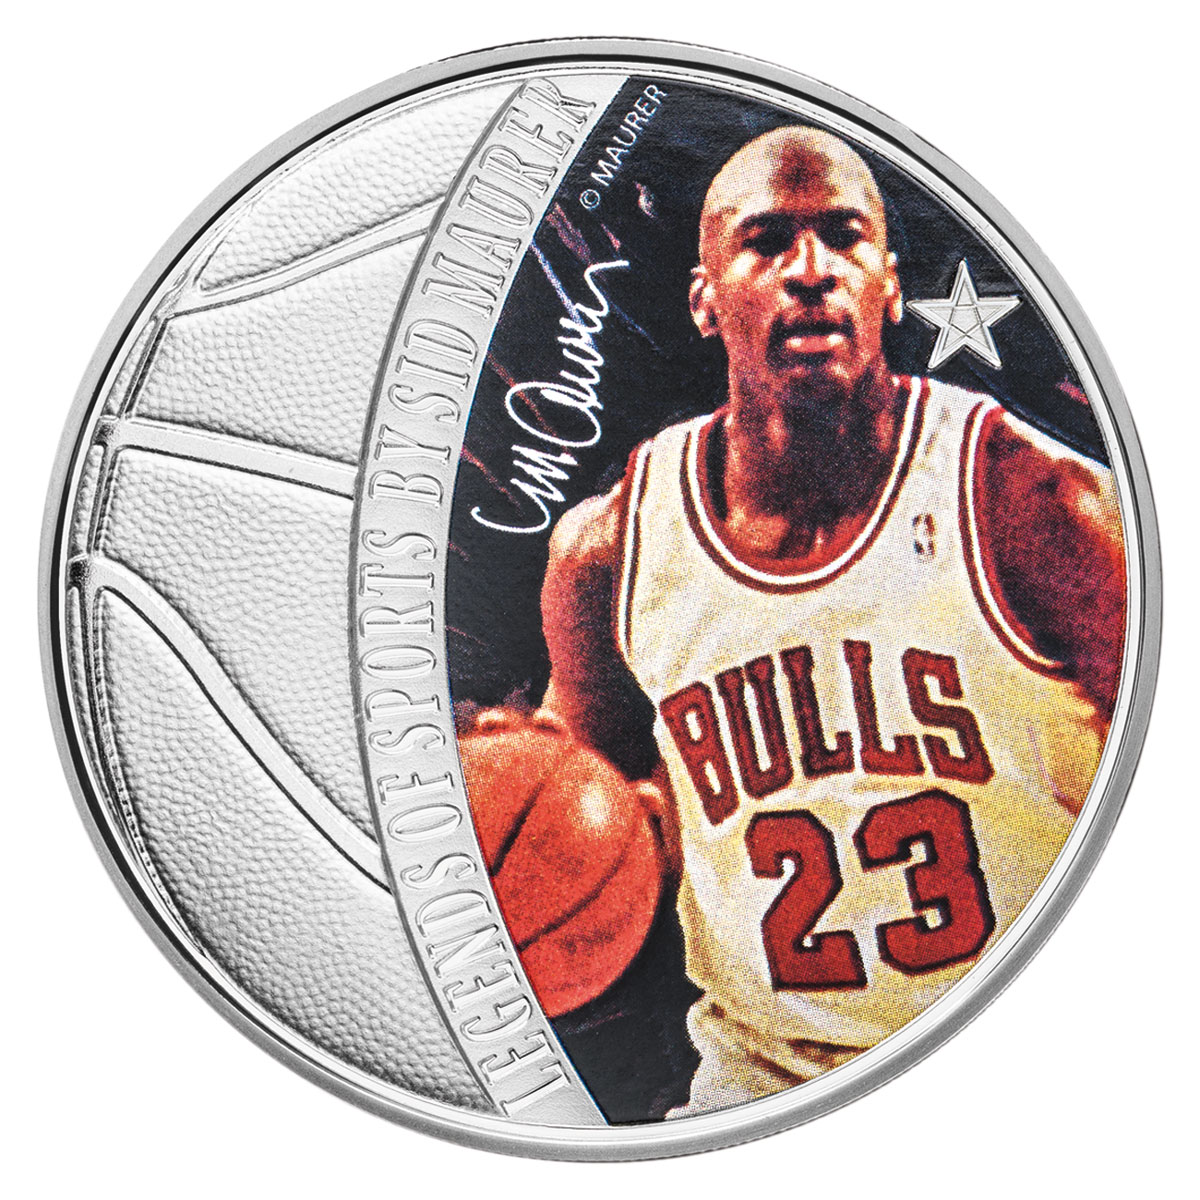 2018 Solomon Islands Legends of Sports - Michael Jordan 1 oz Silver Colorized Proof $5 Coin GEM Proof OGP